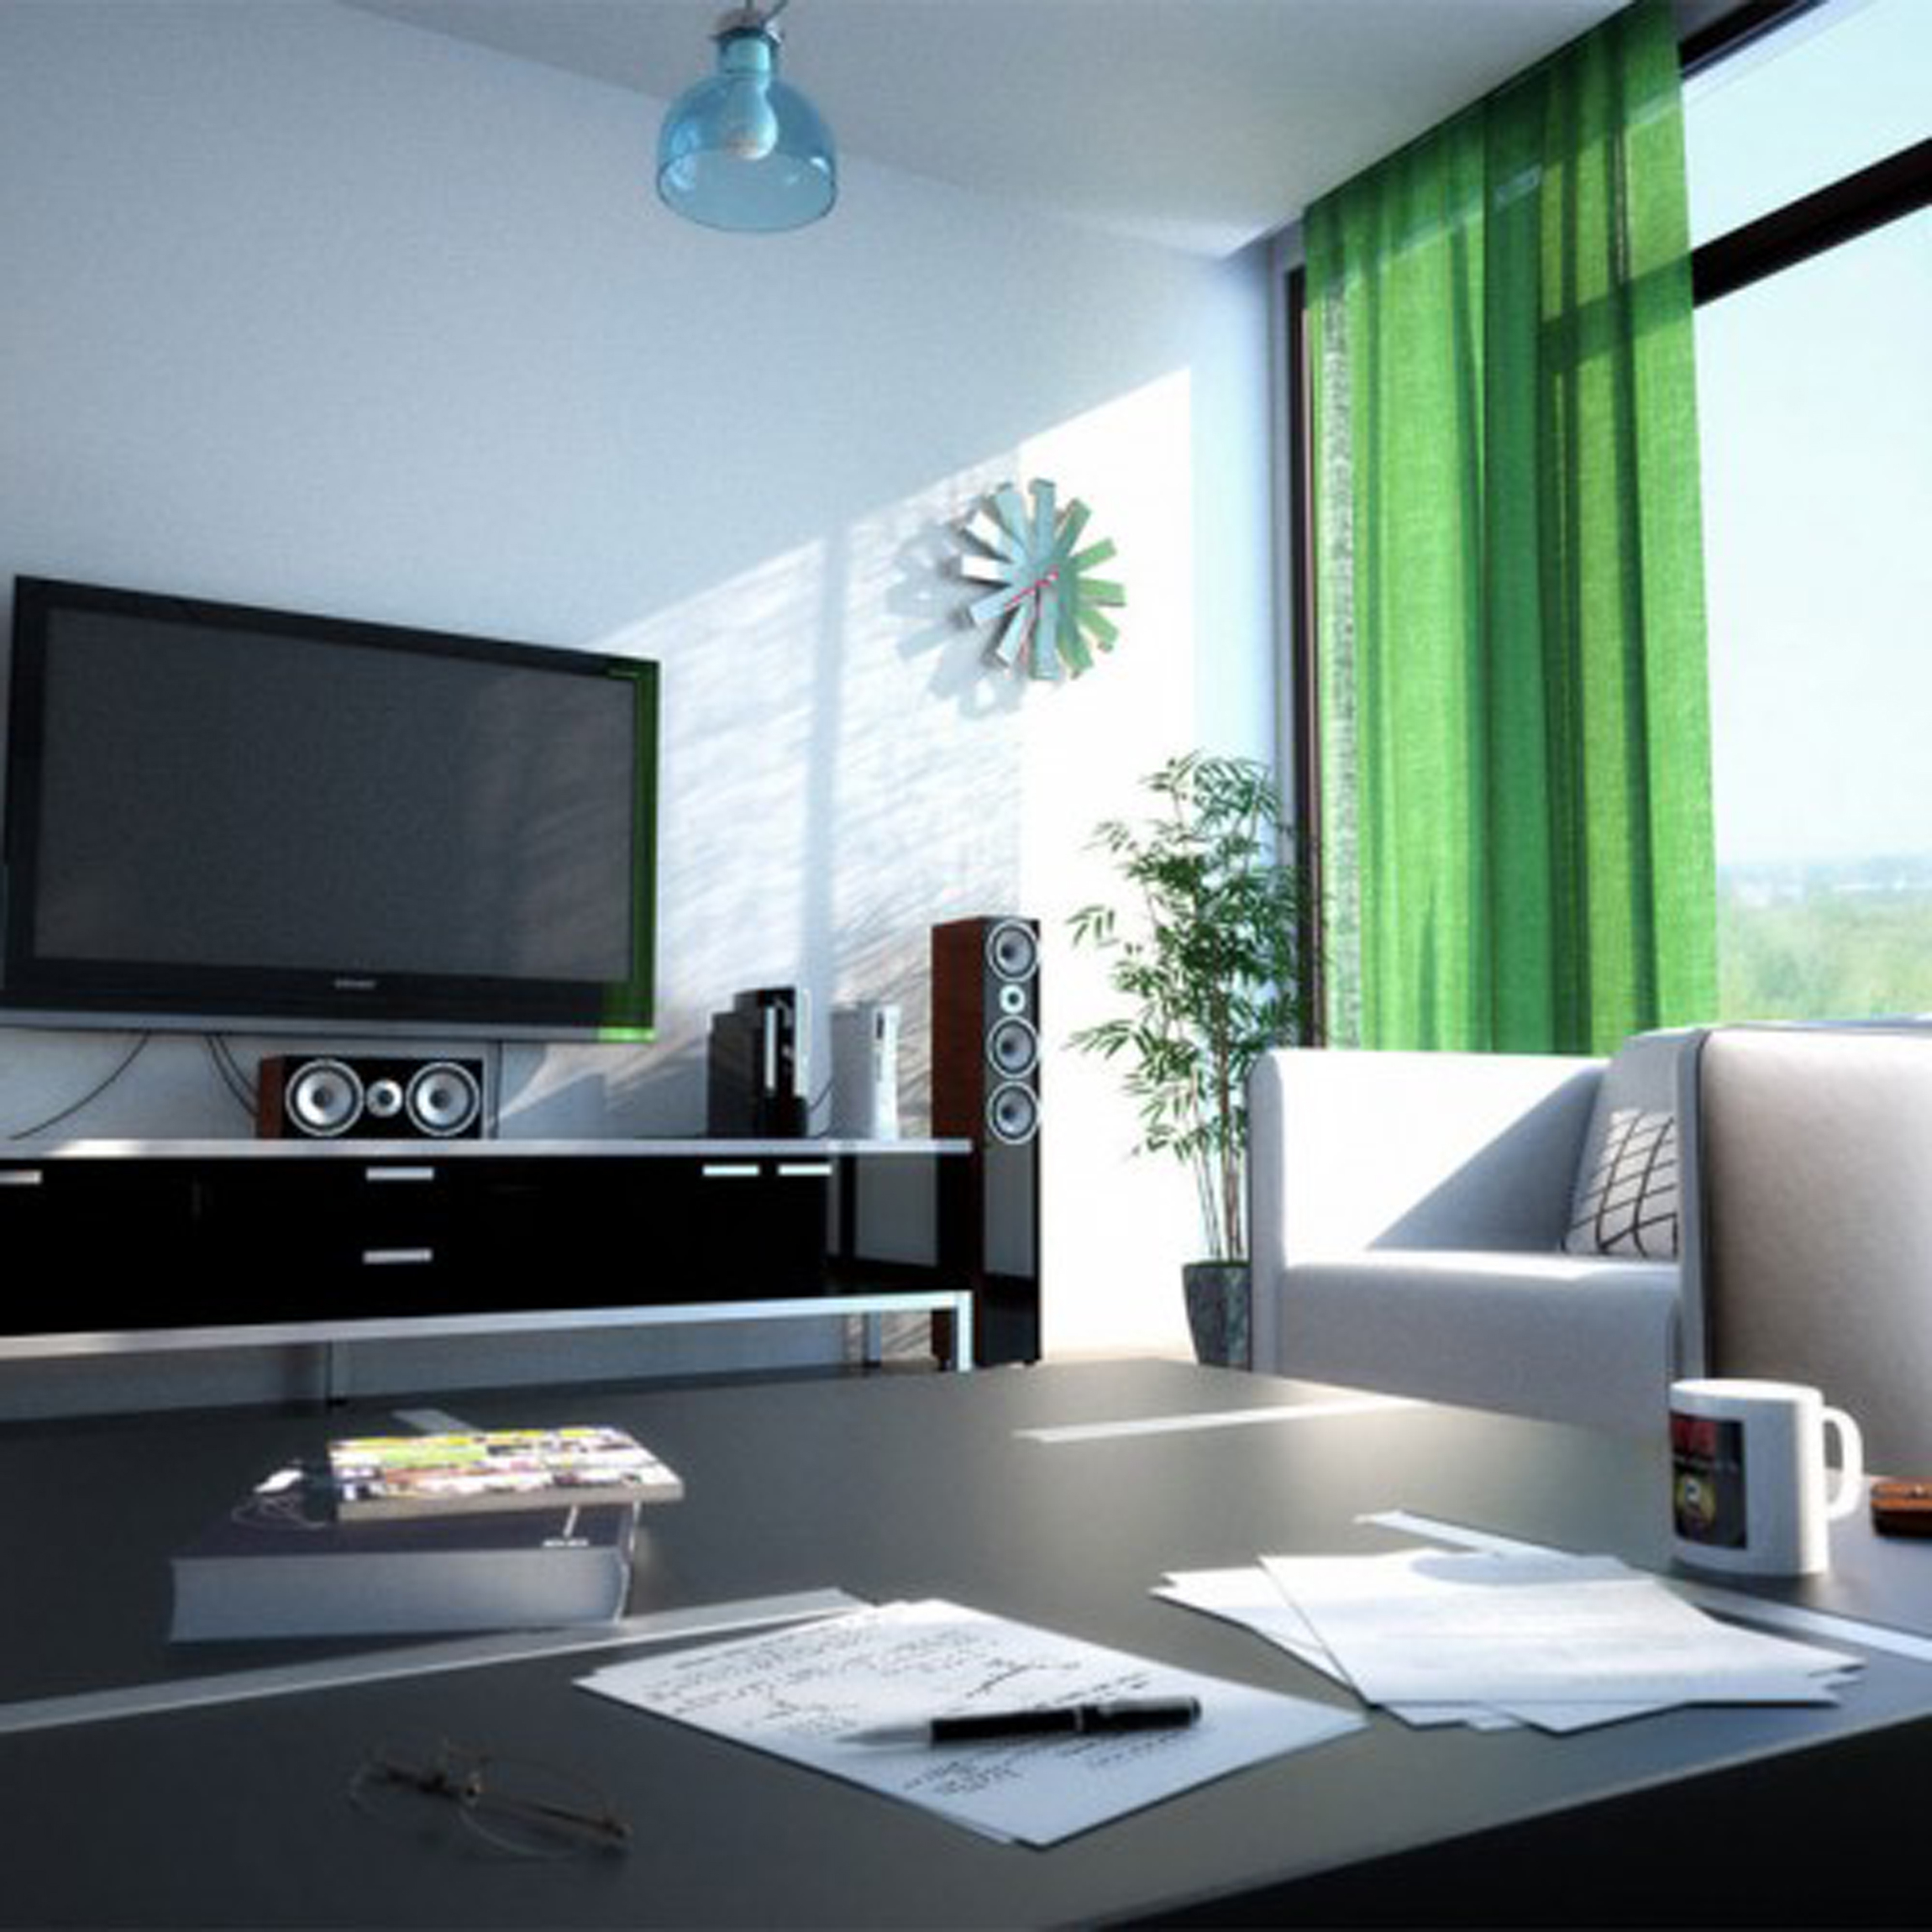 Apartment Living Room Design With Trendy Black Shelf Design Even Tasteful Green Window Curtain (Image 5 of 45)